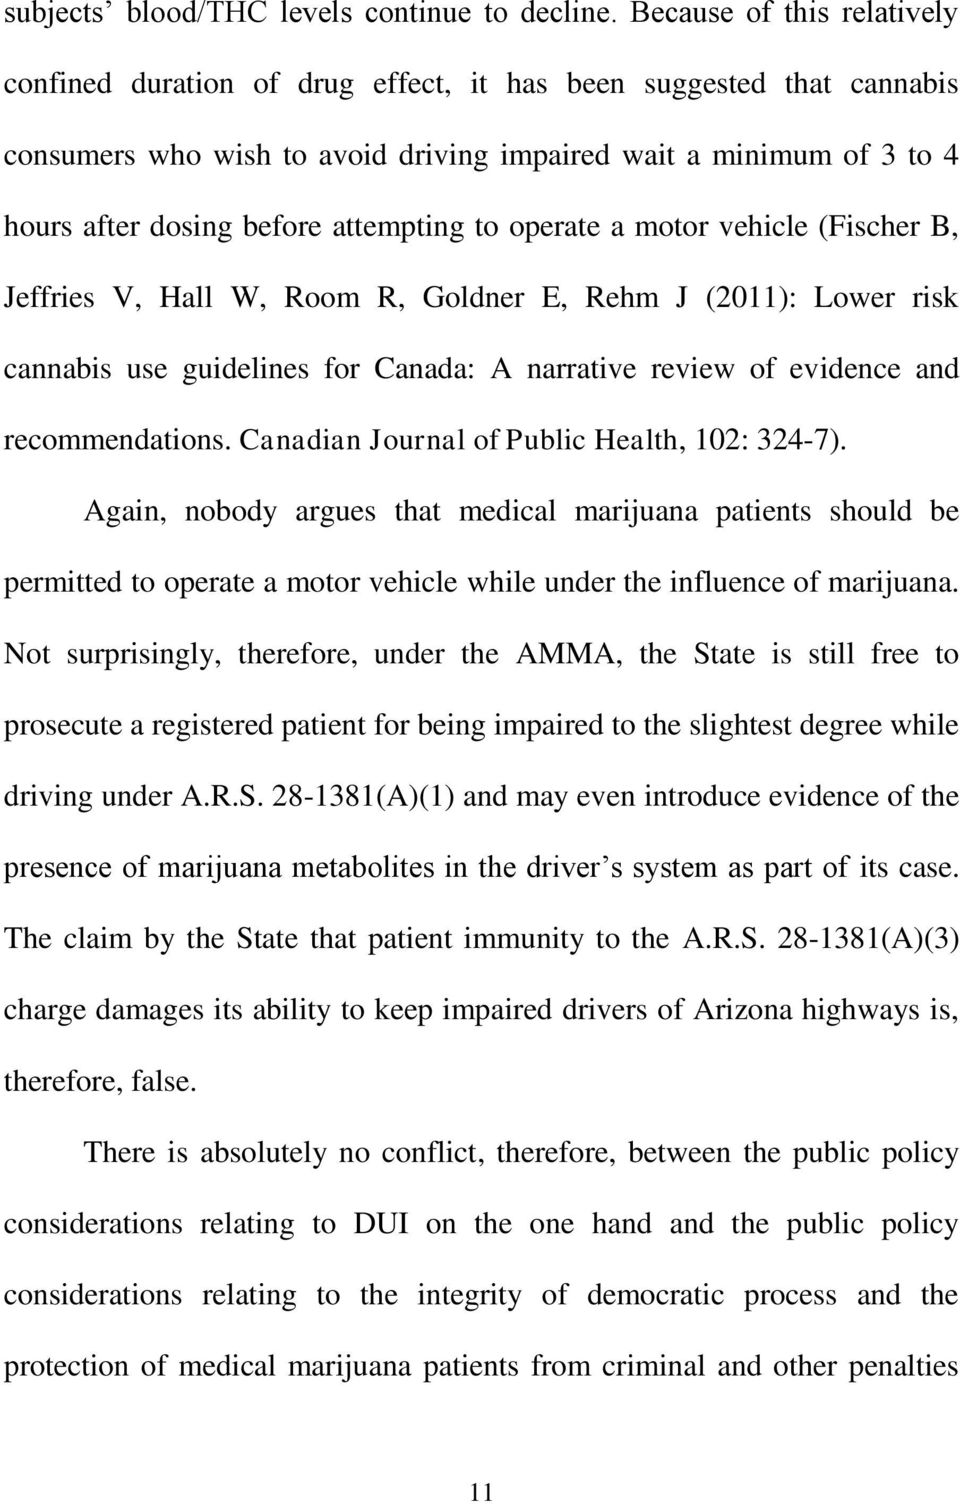 attempting to operate a motor vehicle (Fischer B, Jeffries V, Hall W, Room R, Goldner E, Rehm J (2011: Lower risk cannabis use guidelines for Canada: A narrative review of evidence and